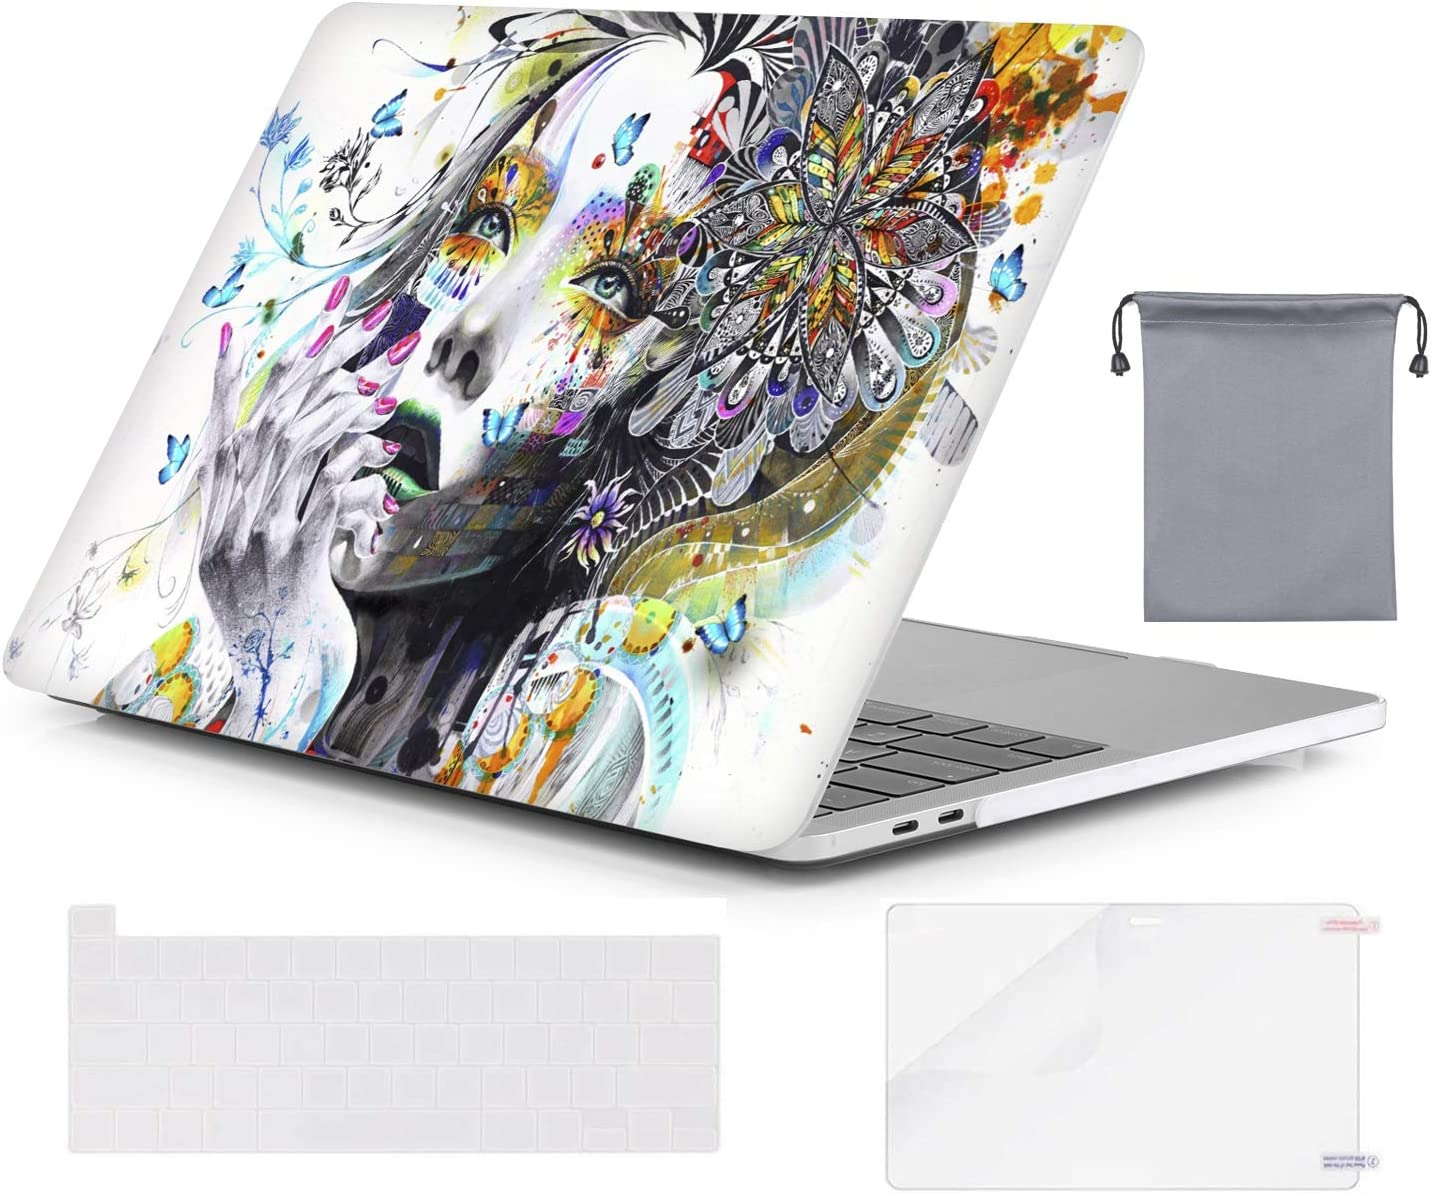 OZADE MacBook Pro 13 inch Case 2020 2019 2018 2017 2016 Release A2289 A2251 A2159 A1989 A1706 A1708,Plastic Hard Shell Case for Apple MacBook Pro 13 with/Without Touch Bar,Girl & Buterflys White Base